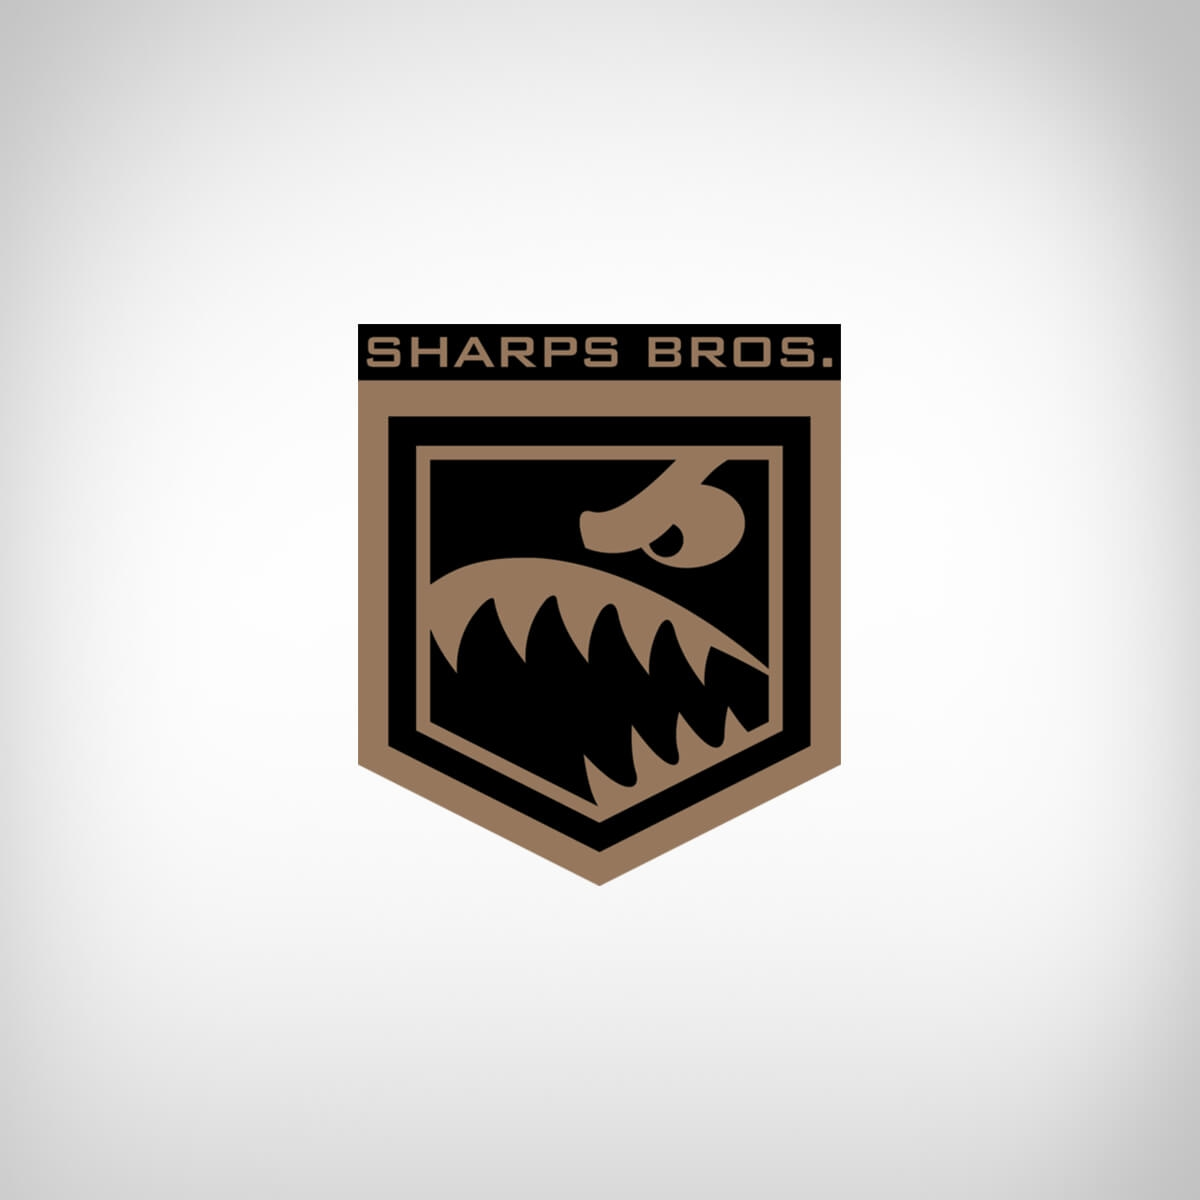 Sharps Bros MFG